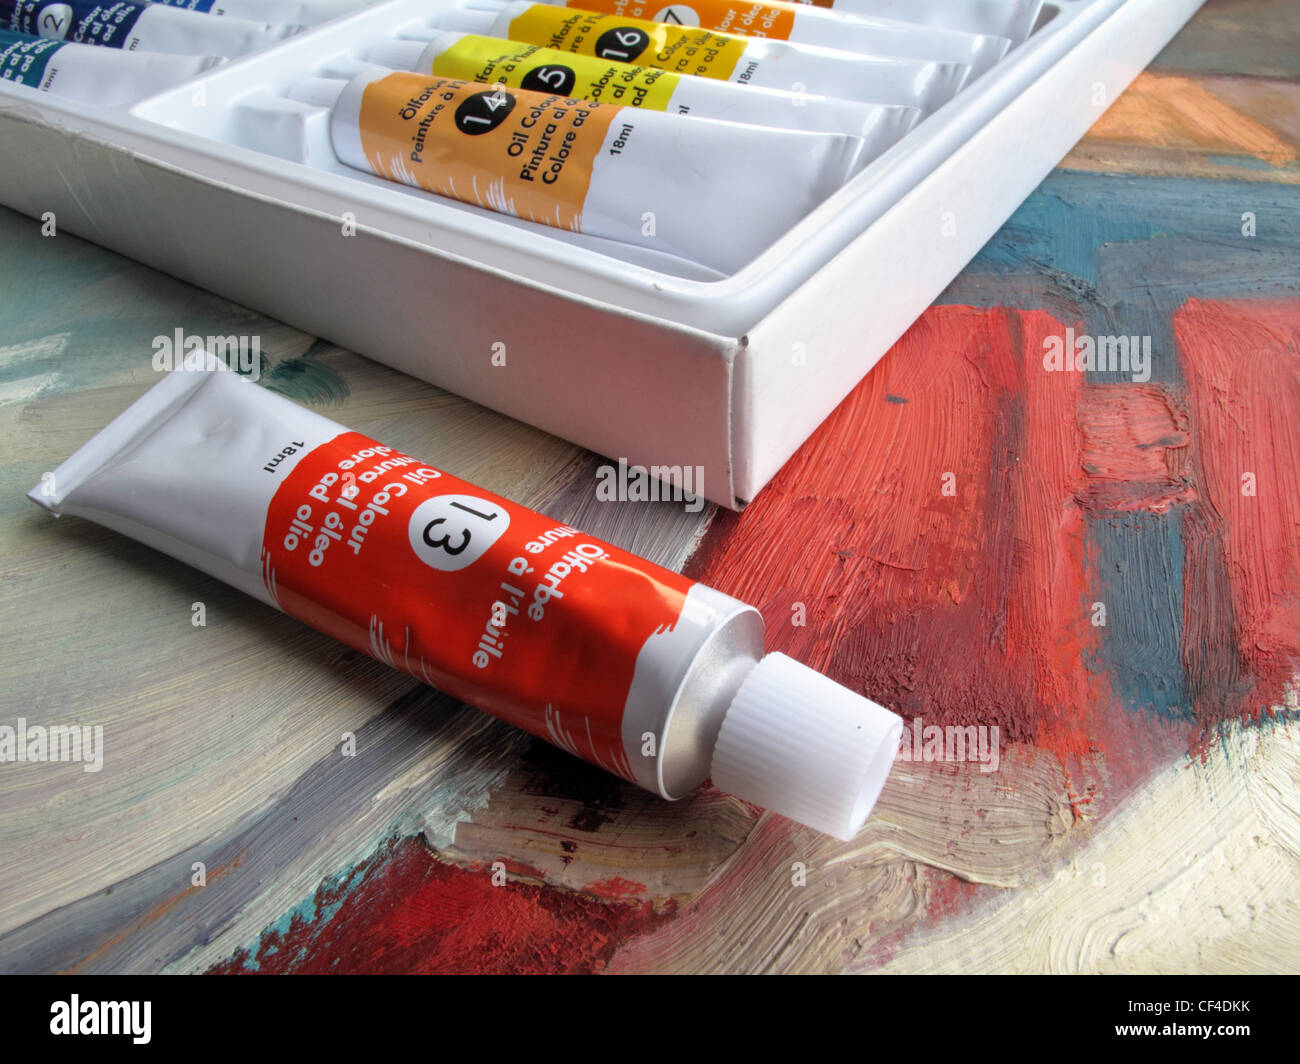 A new tube of red oil paint sits next to a box of oil paints -  all lie  on top of an oil painting. - Stock Image